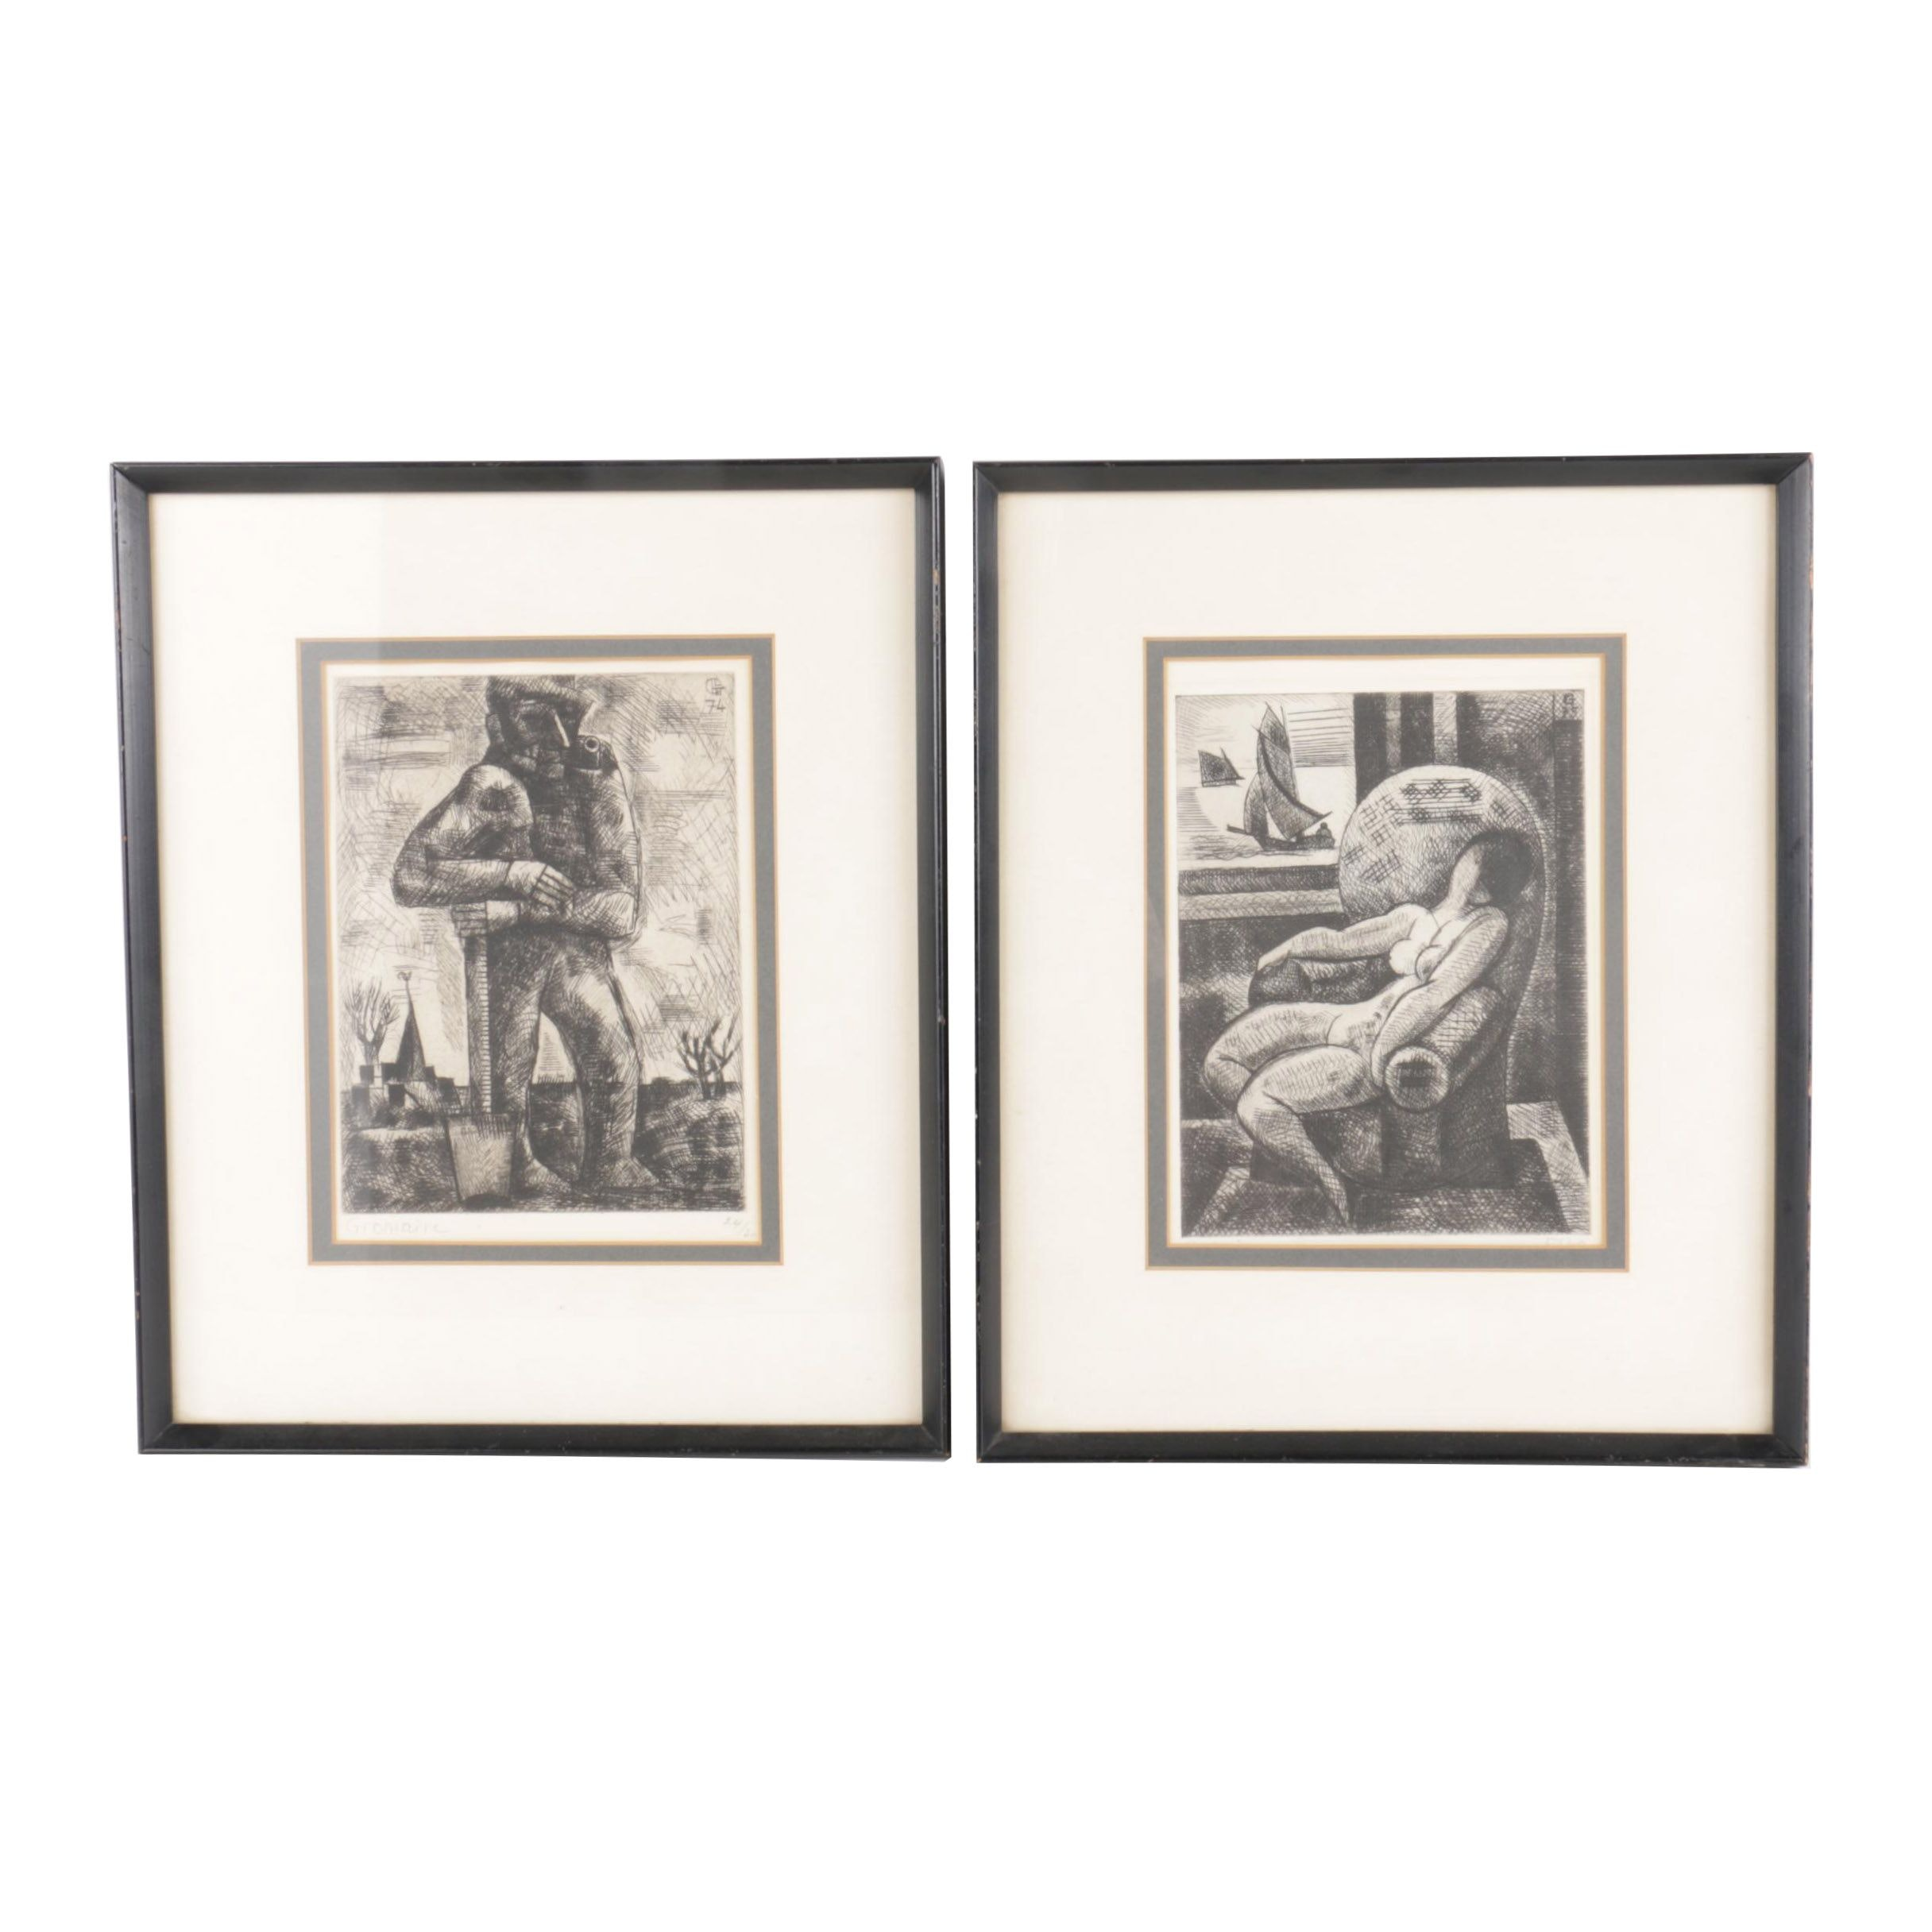 "Marcel Gromaire 1920s Limited Edition Etchings Including ""Nude in Armchair"""